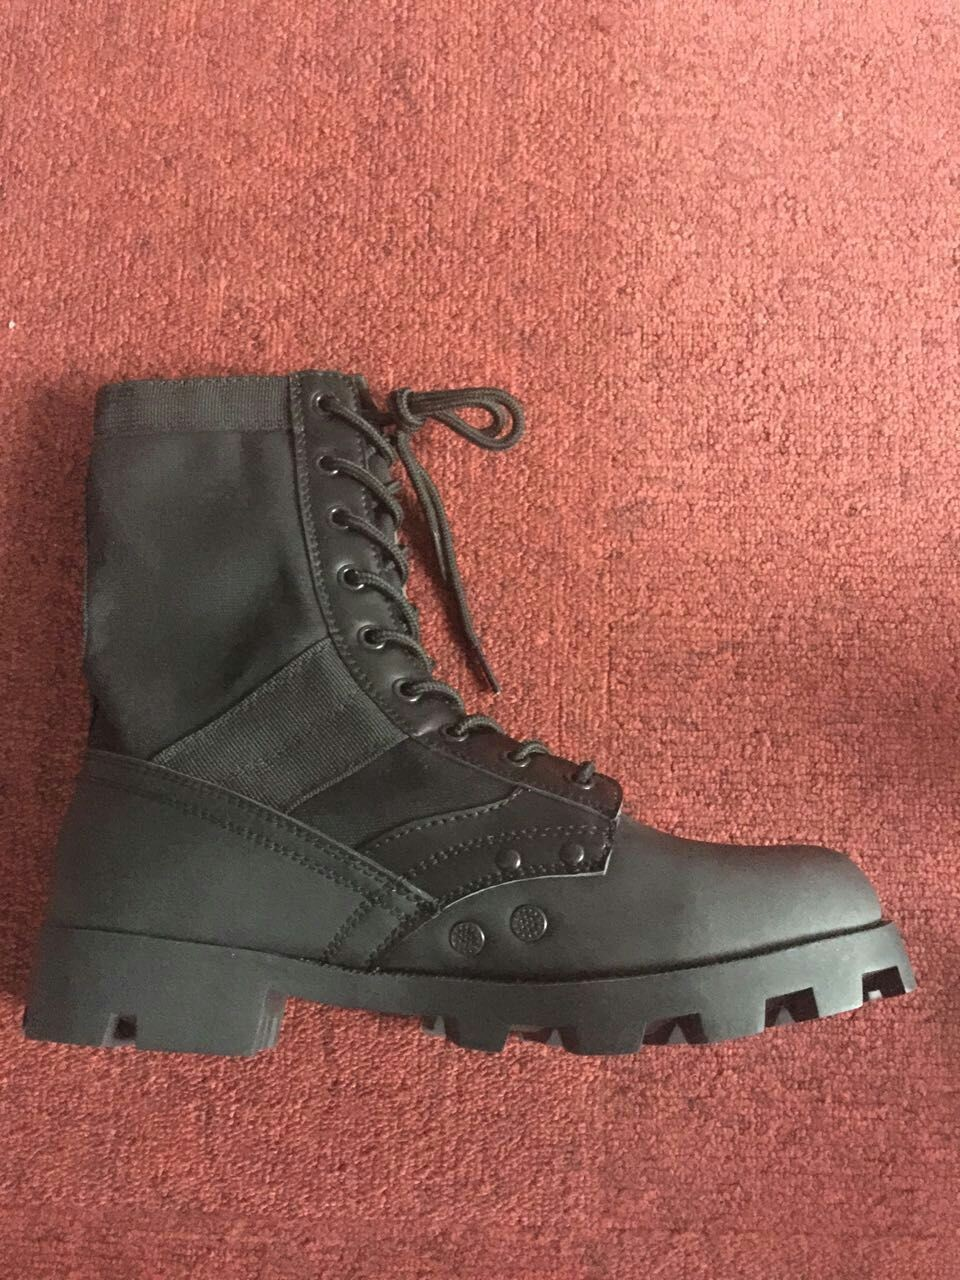 Loveslf genuine leather man army boots safety and hot selling military tactical shoes army jungle shoes